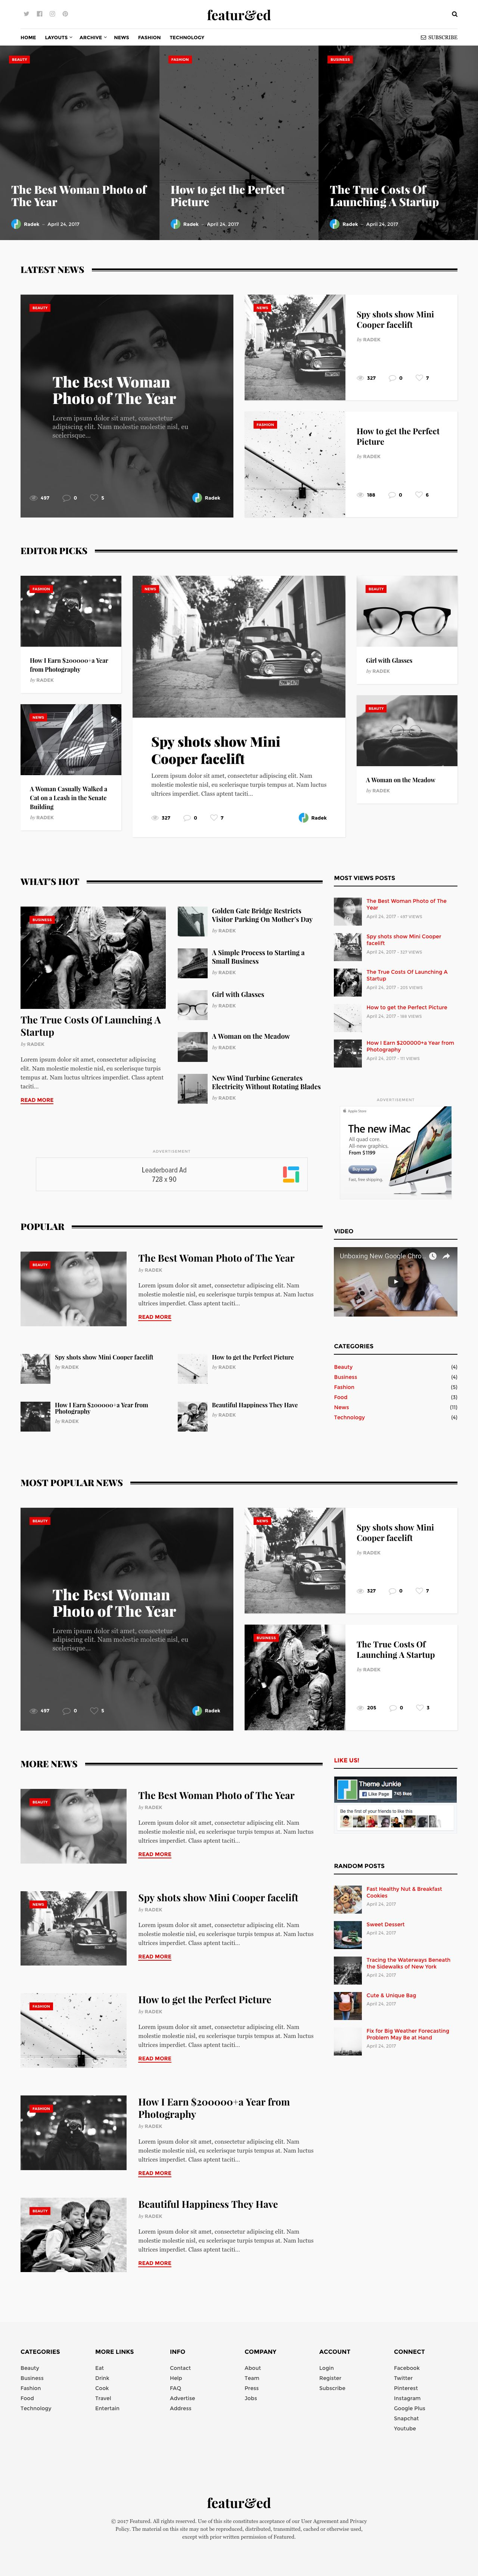 Featured WordPress Theme for Publication